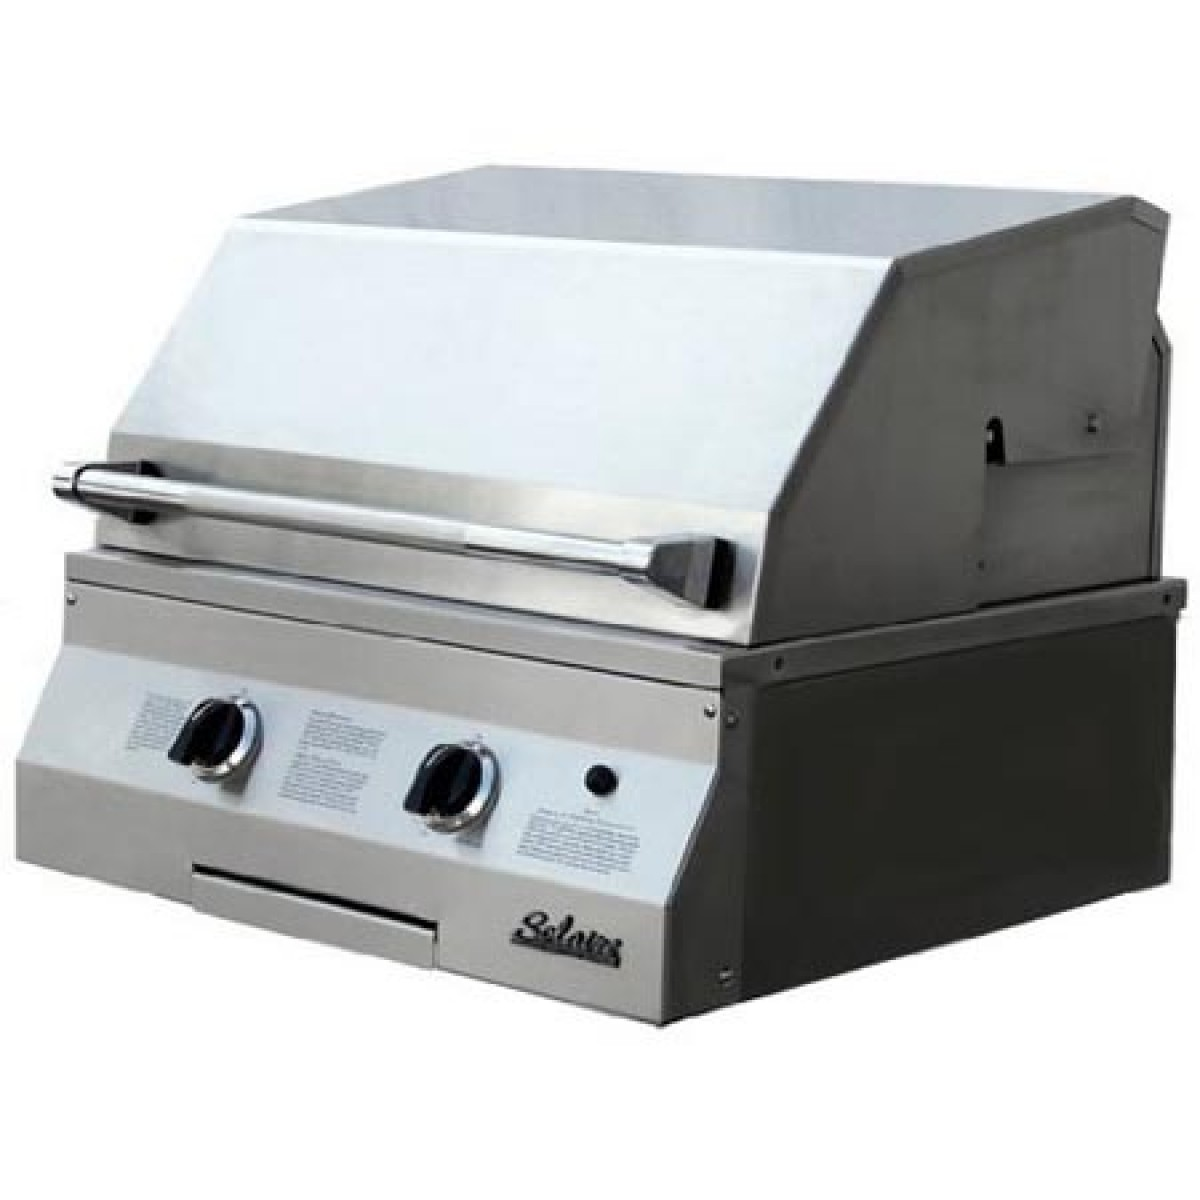 heli parts direct with Solaire Sol Agbq 27gir Ped Ng 27 Ng Infrared Angular Pedestal Grill on Solaire Sol Agbq 27gir Ped Ng 27 Ng Infrared Angular Pedestal Grill as well 282381338180 further Xk Innovations Xk380 Gps Module together with Lily Land in addition Devil 450 Pro V2 Fbl Black Kit Alzrc Copy.